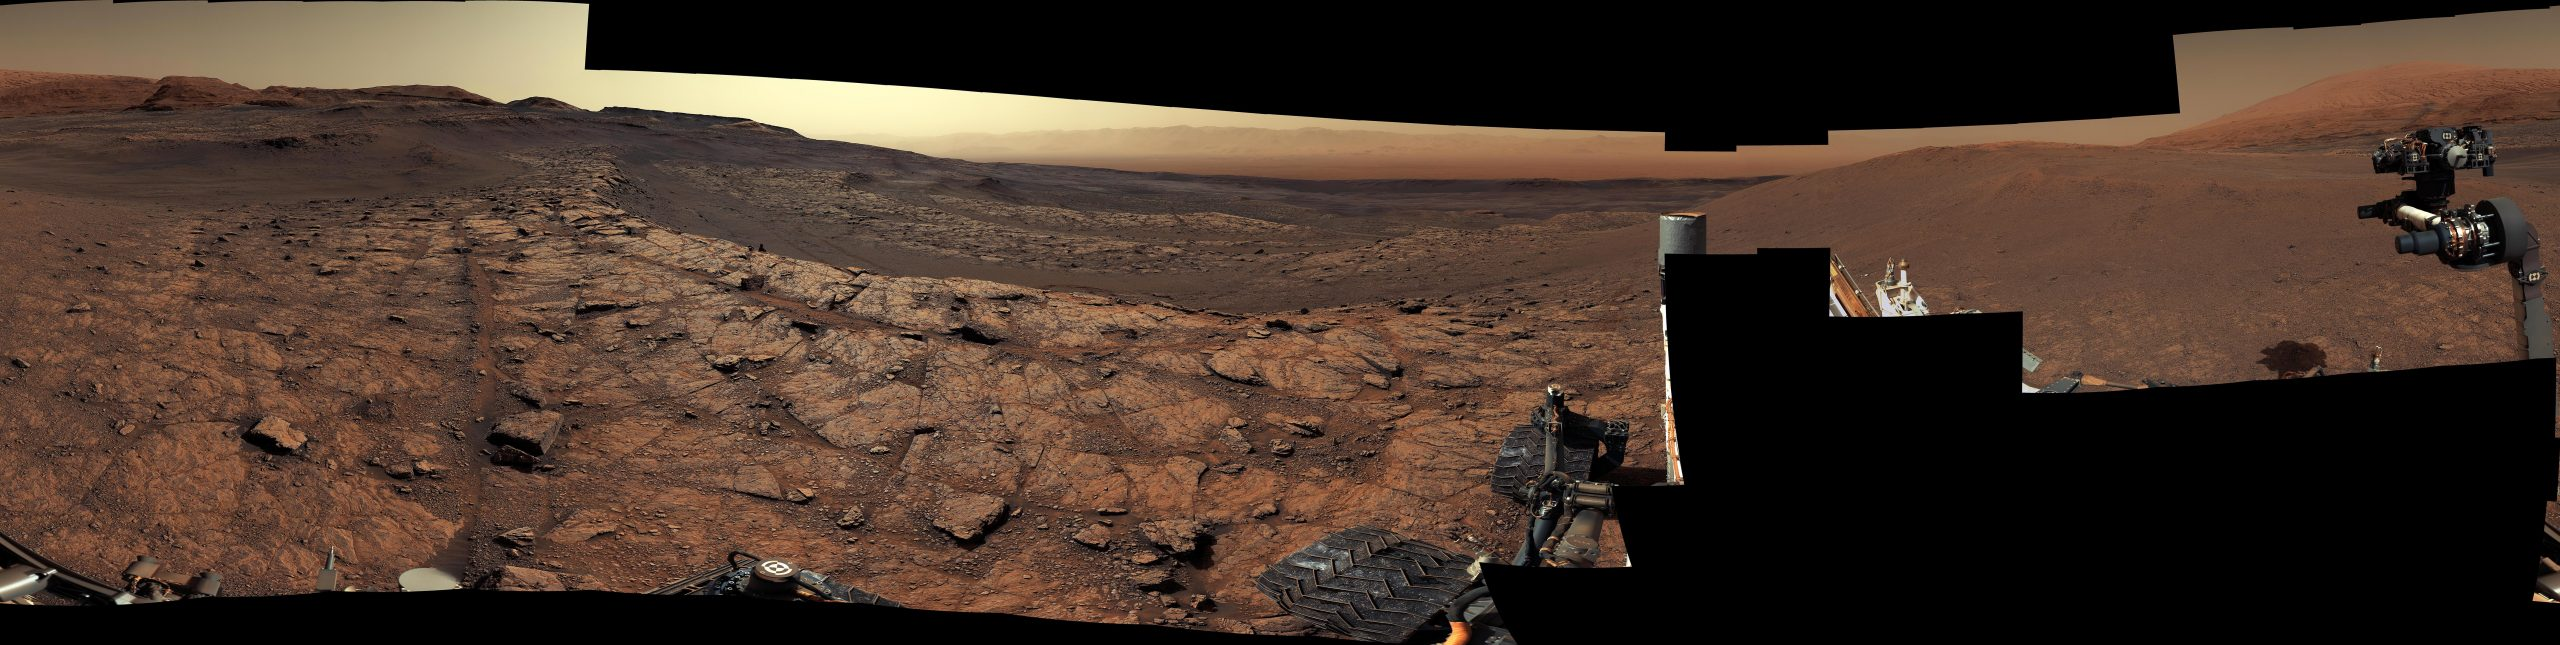 Curiositys-View-of-Benches-on-Mars-scaled